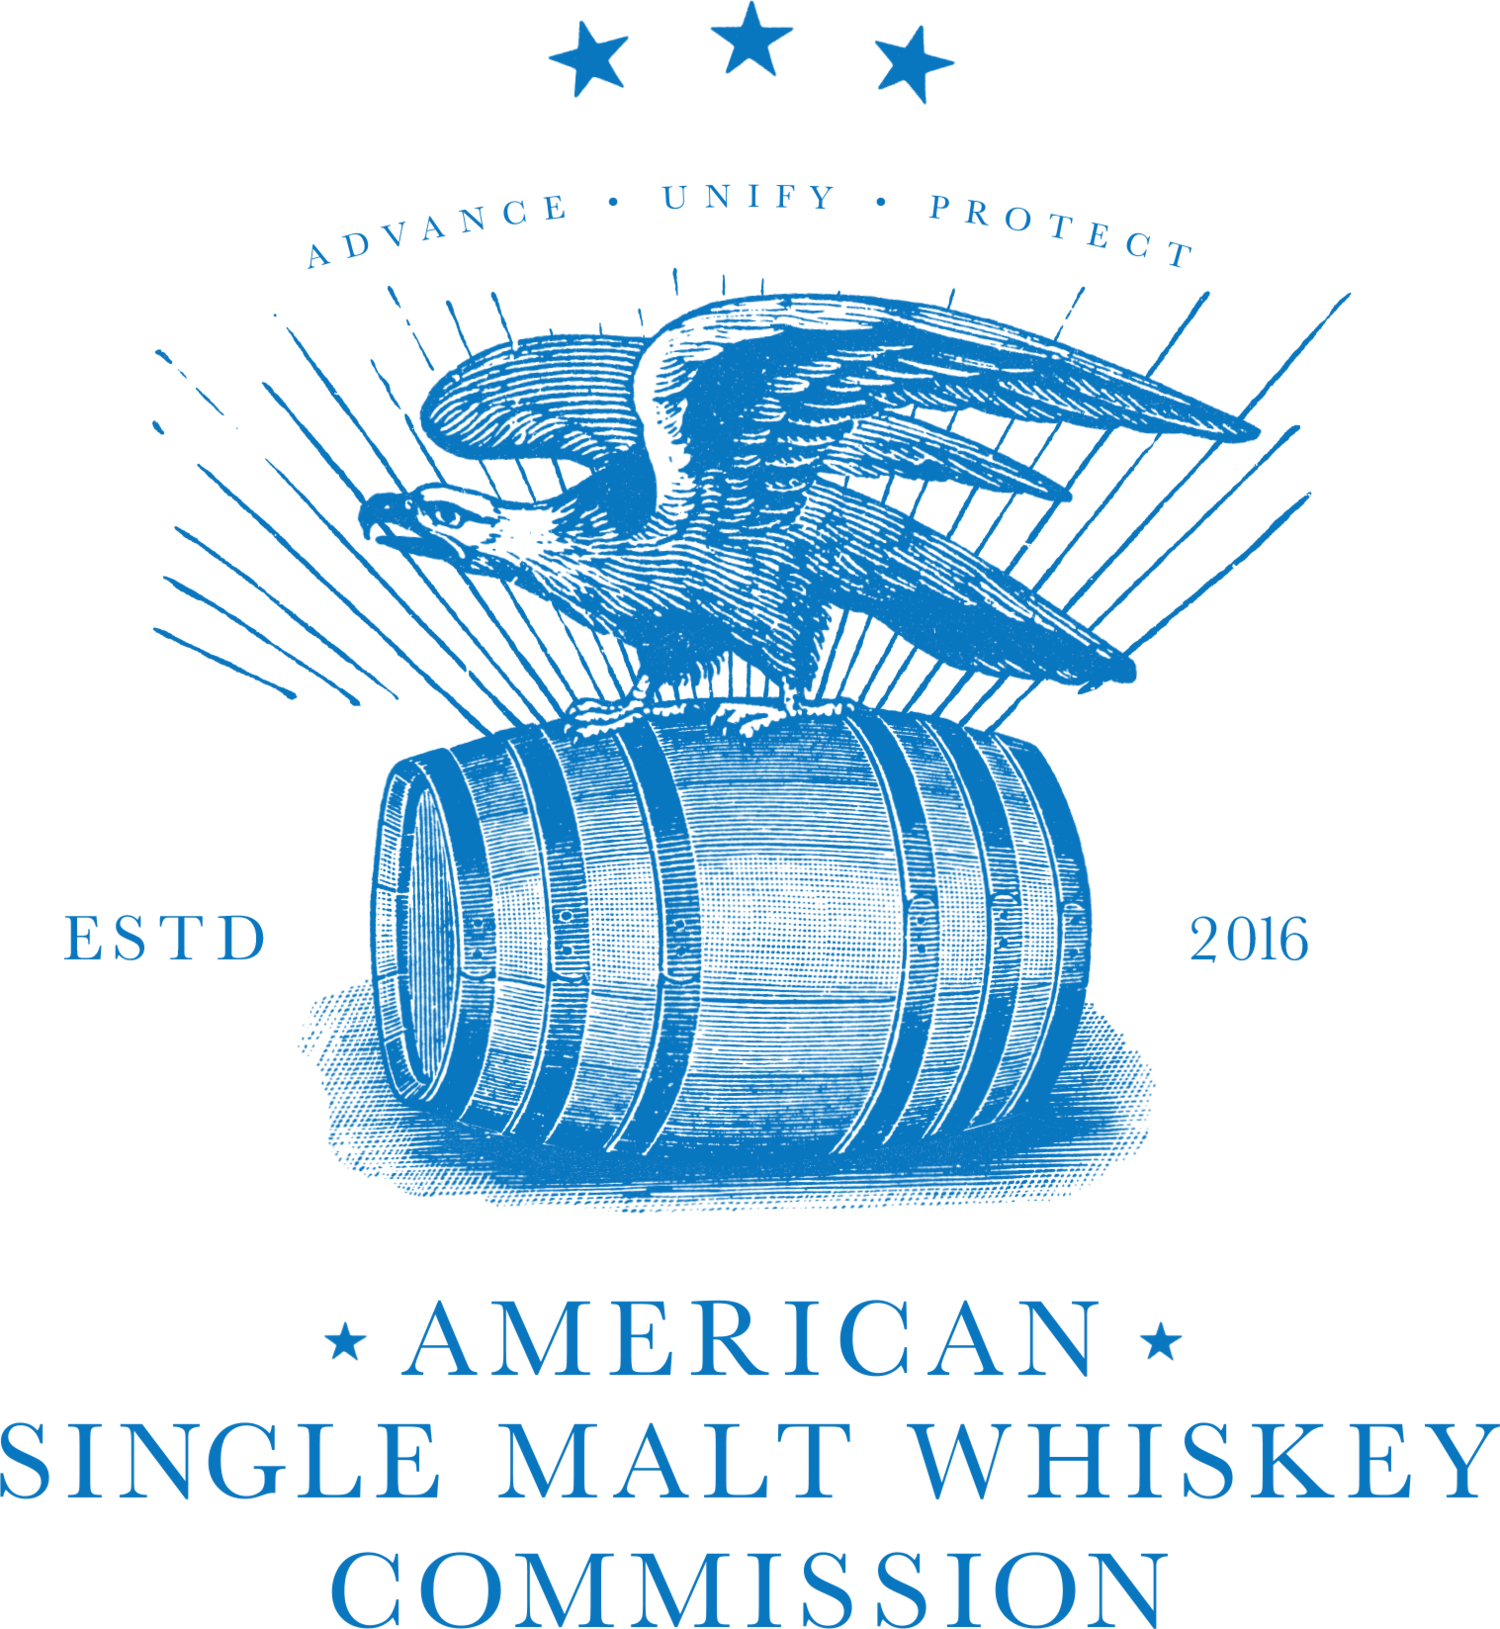 American Single Malt Whiskey Commission